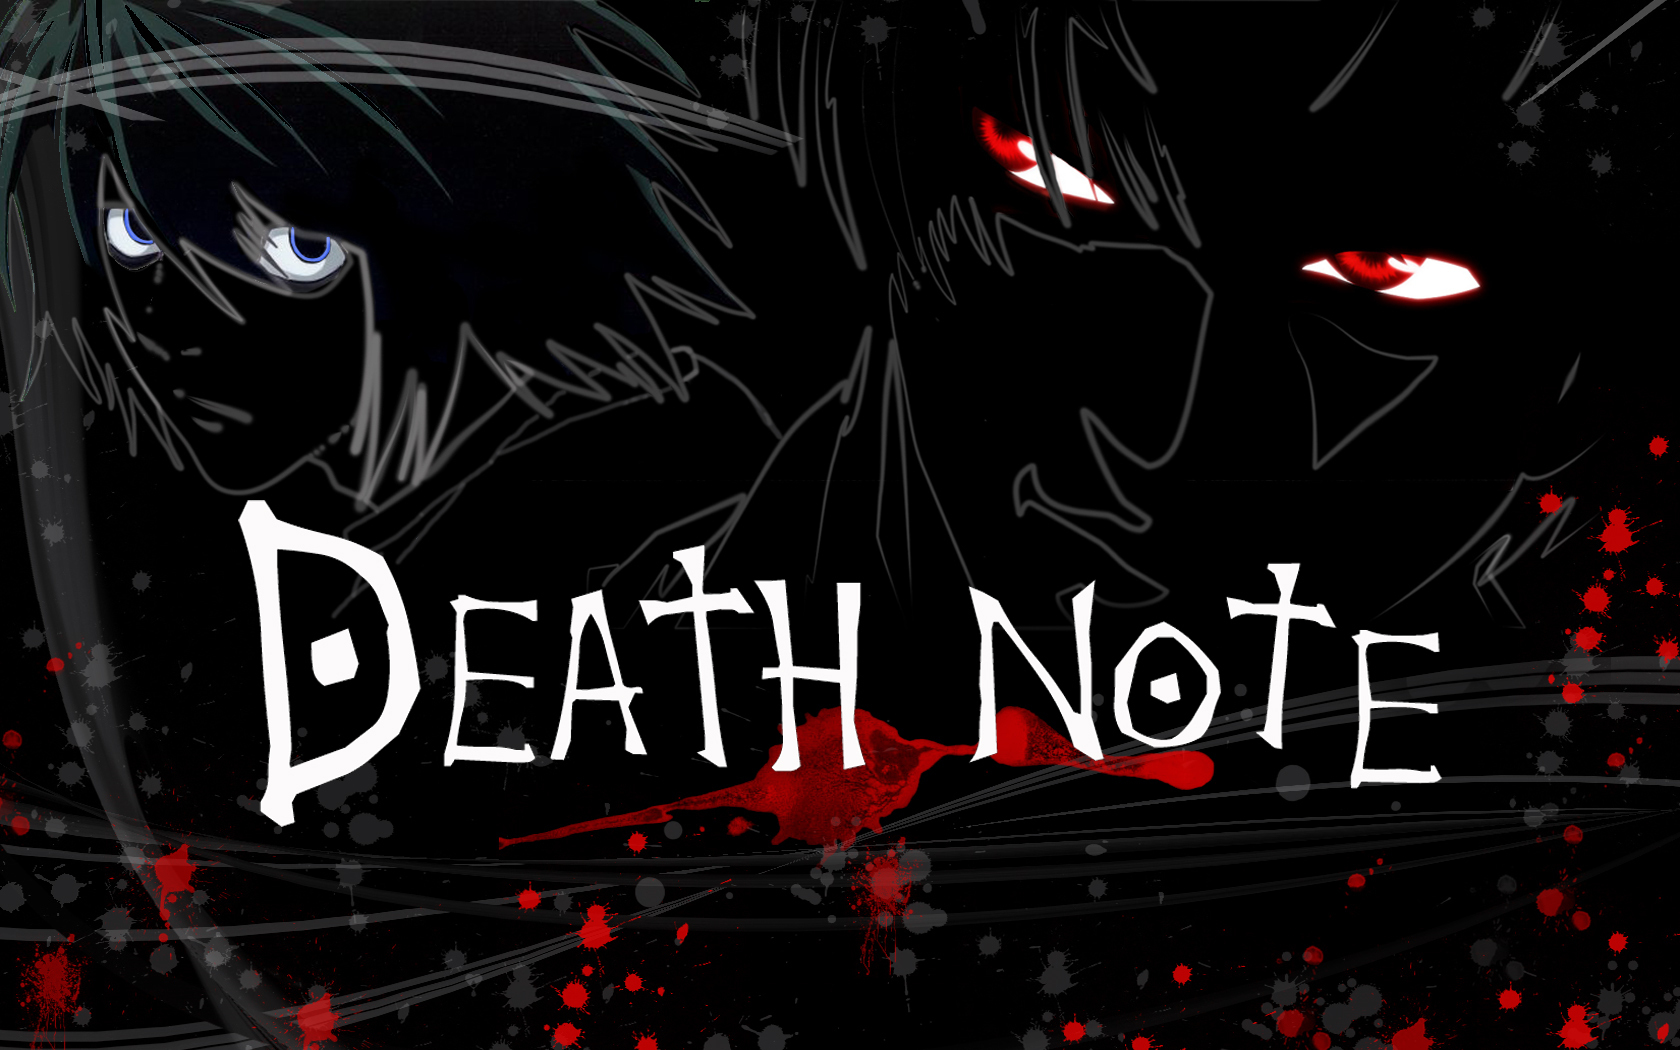 Death Note Wallpapers text logo slogan